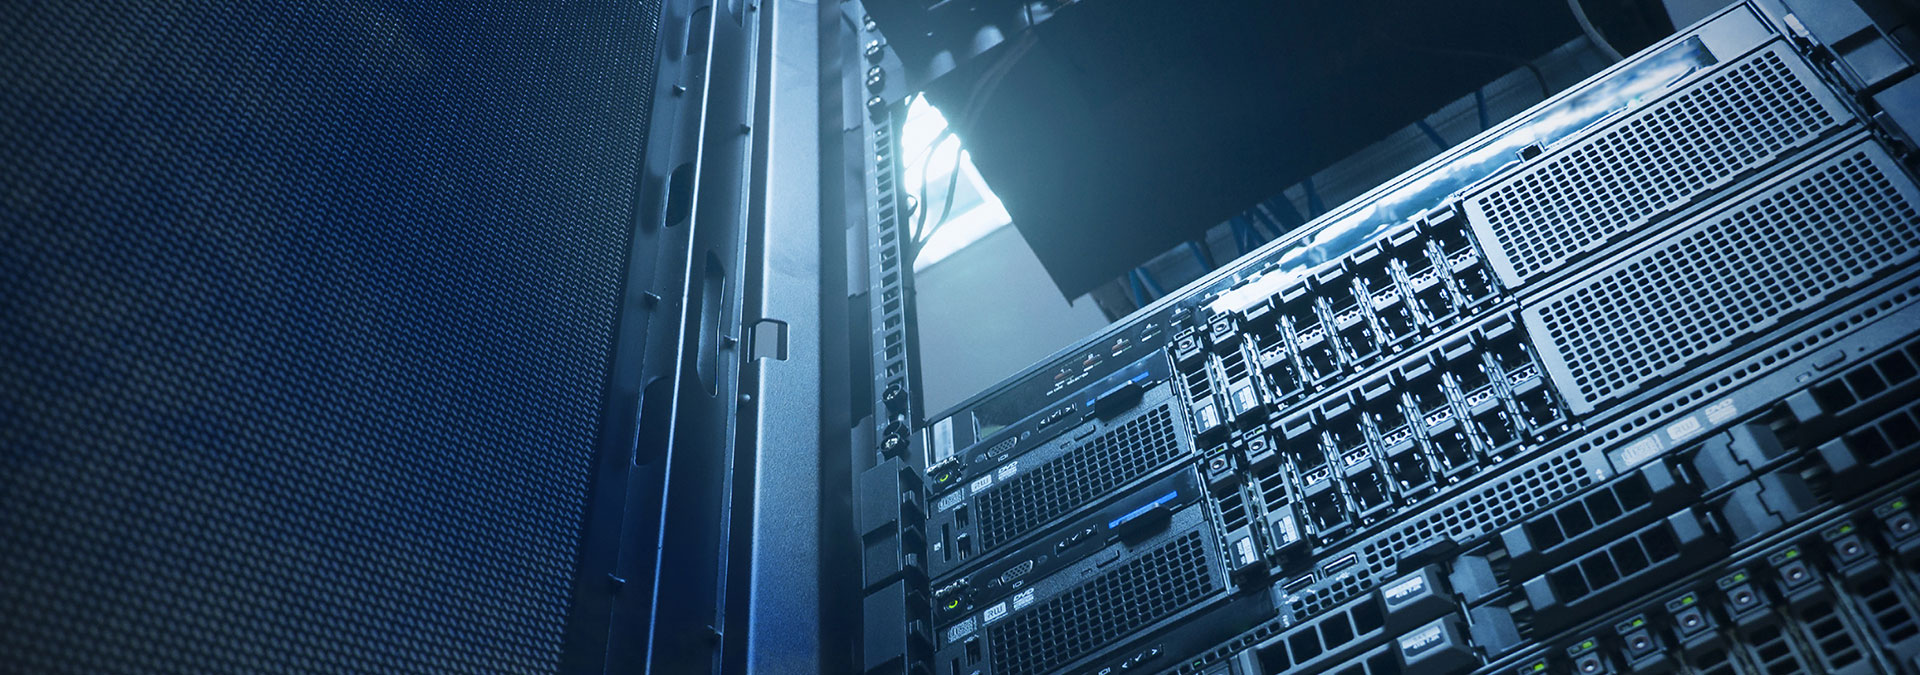 Data Center Infrastructure Systems Maintenance